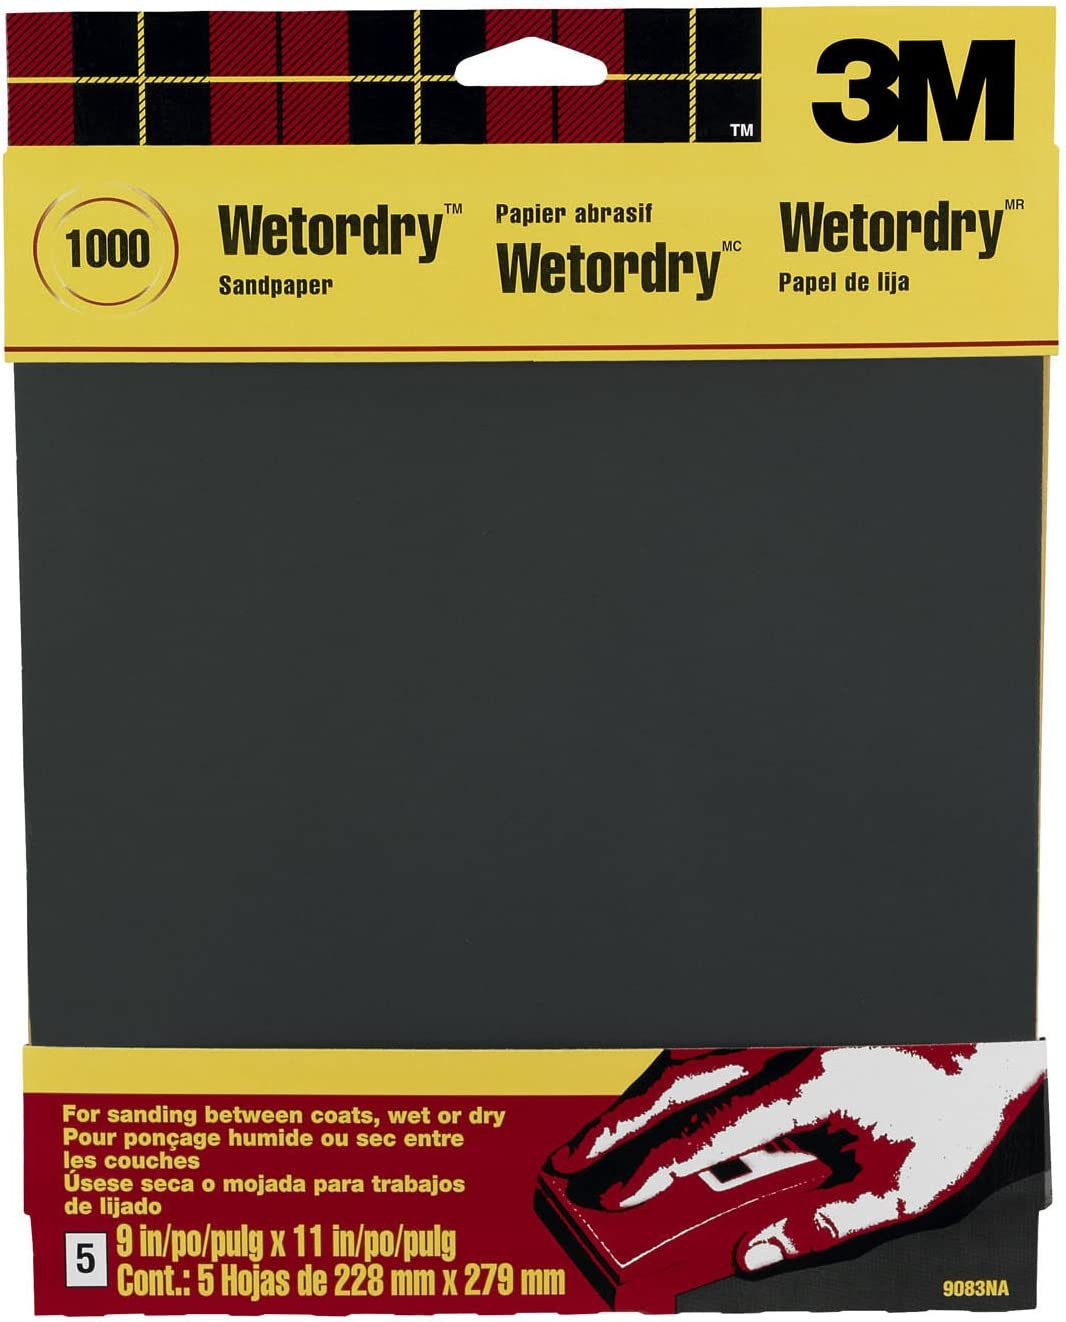 3M Wetordry Sandpaper, 1000-Grit, 9-Inch by 11-Inch, 5 Sheets - 9083NA-20